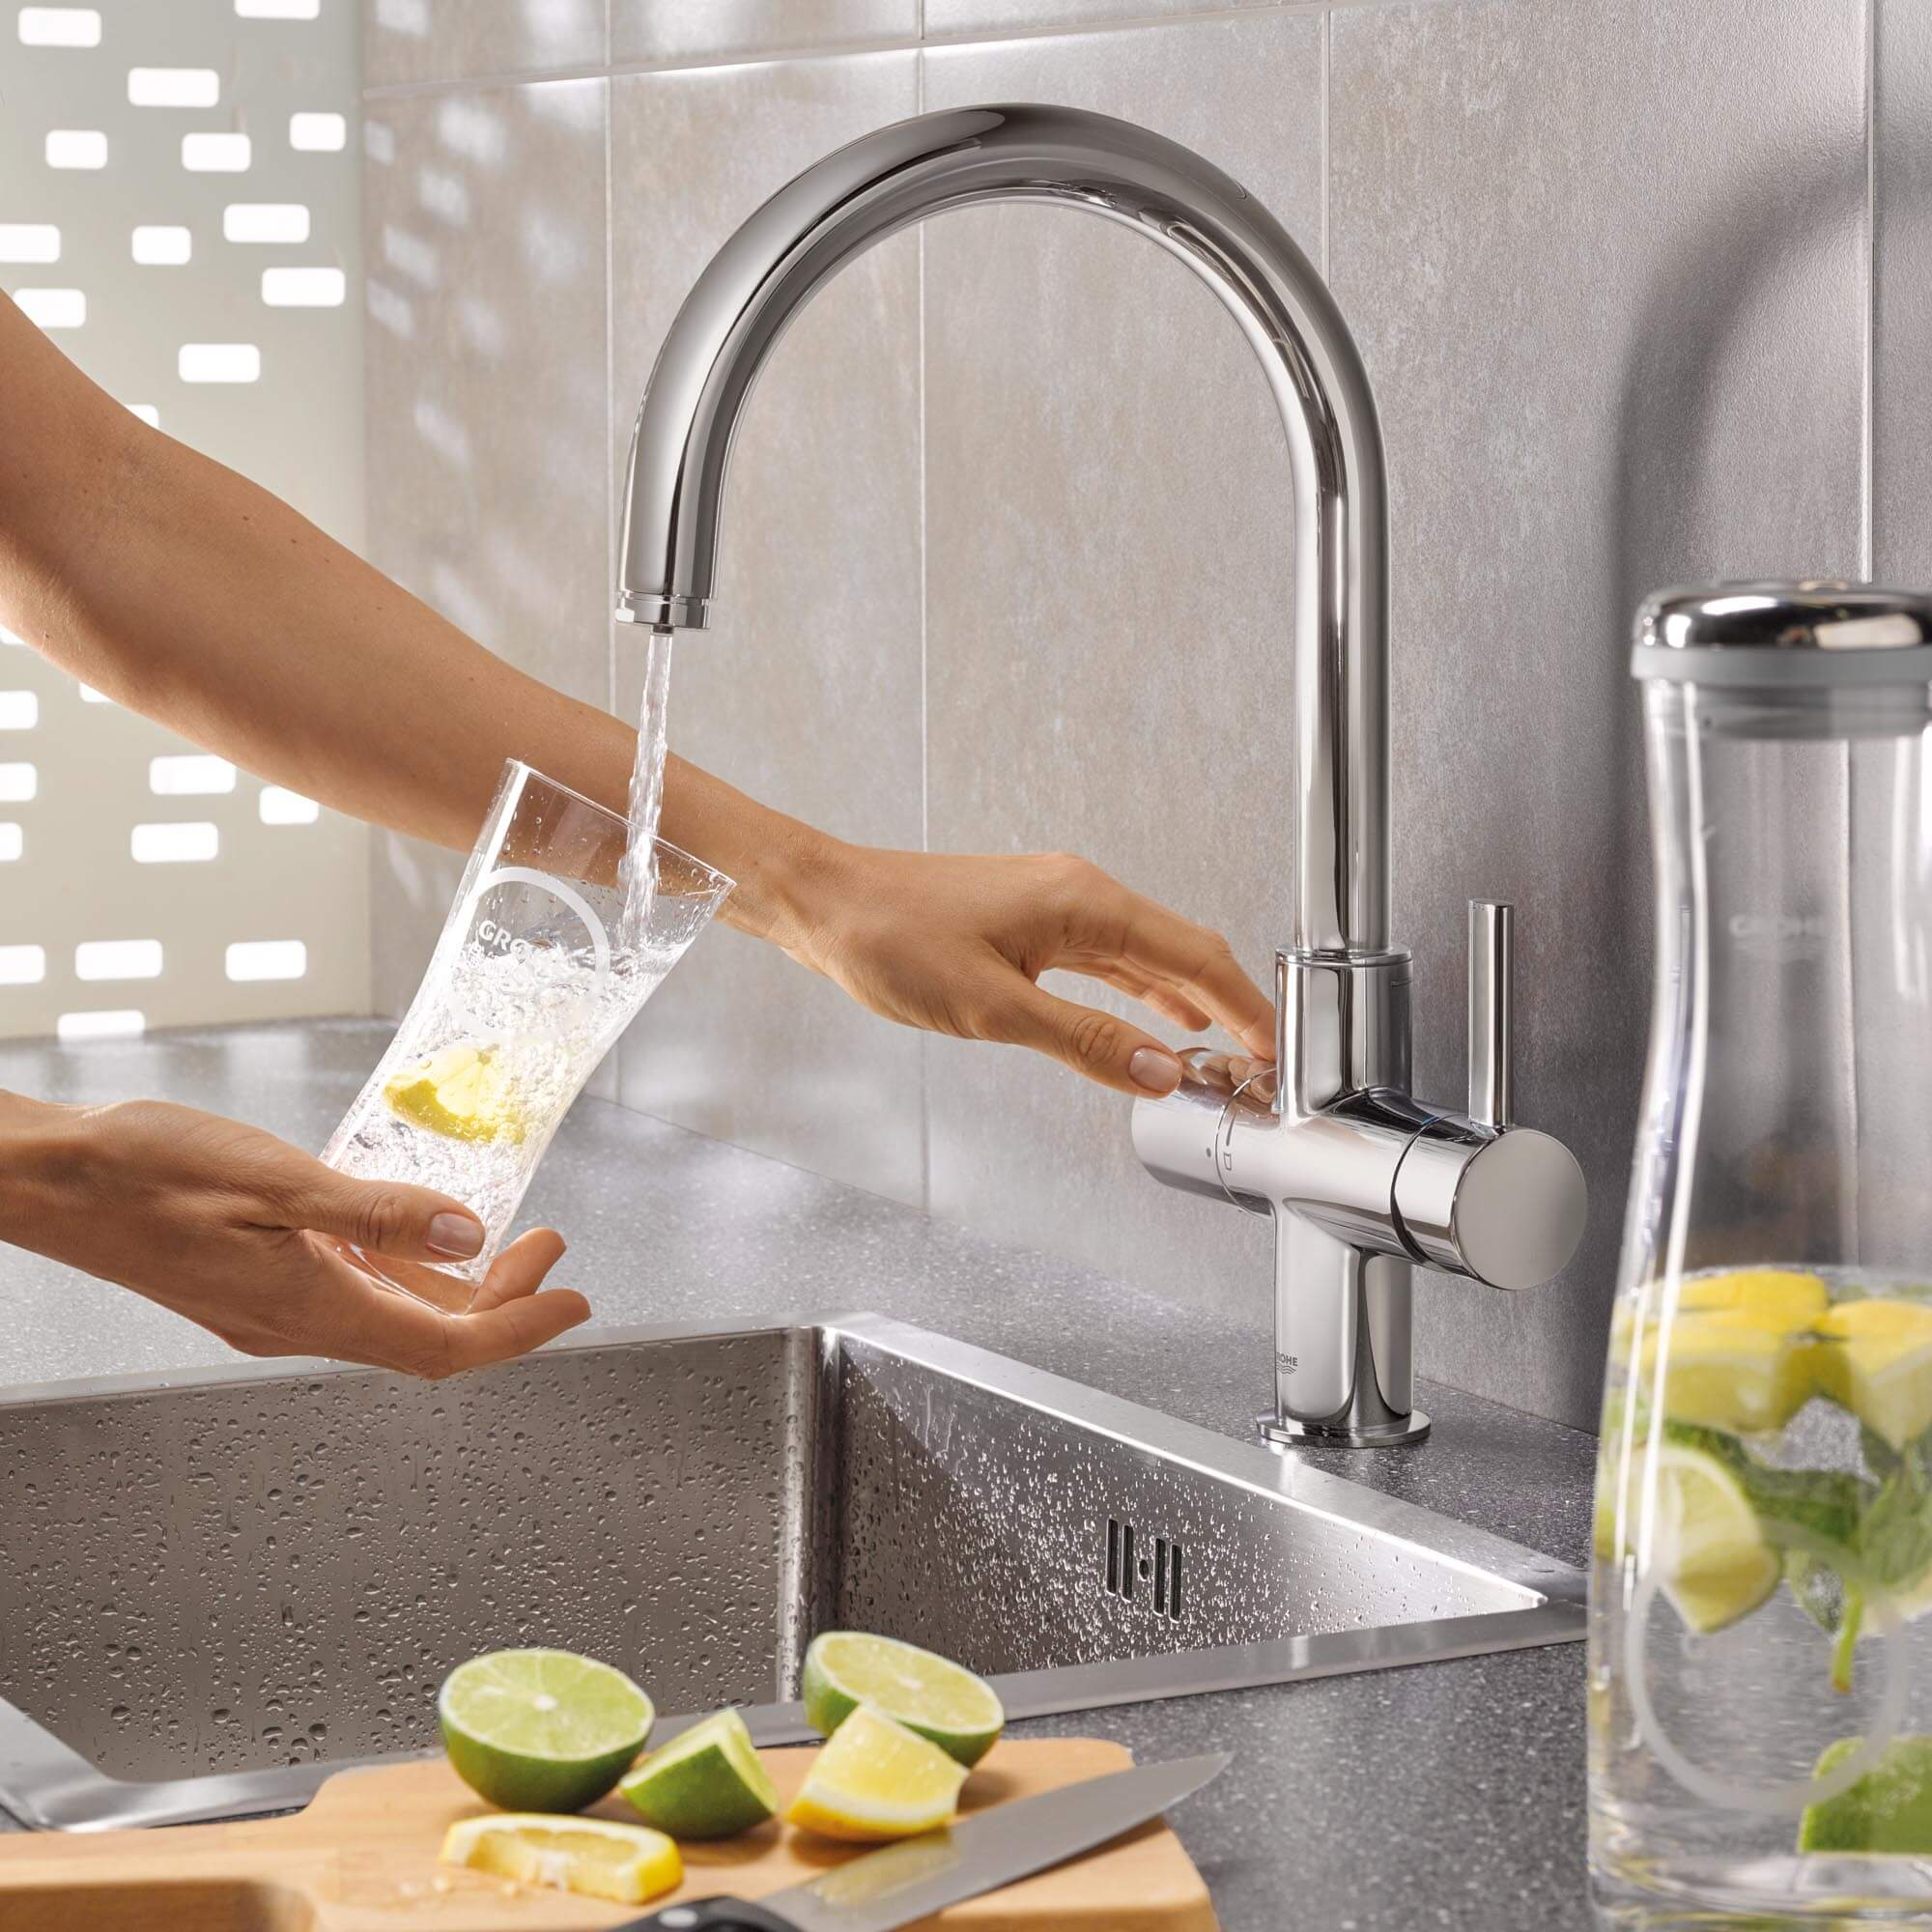 Grohe blue faucet pouring water into a cup.